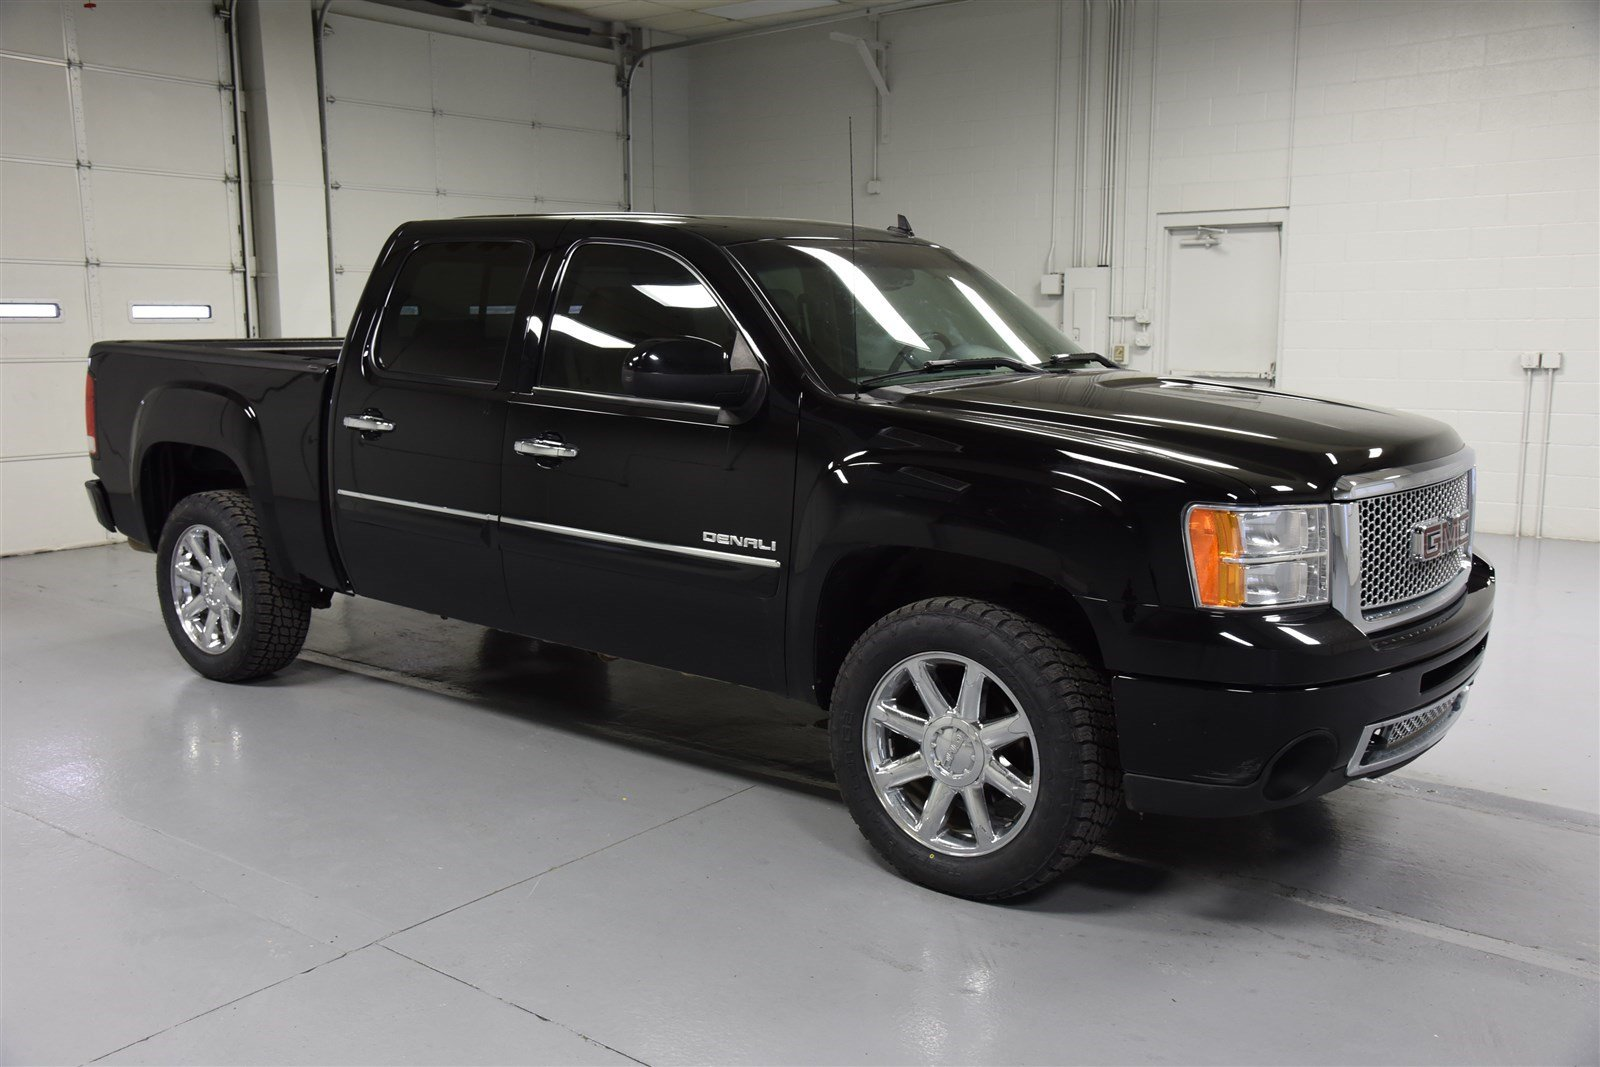 Pre-Owned 2012 GMC Sierra 1500 Crew Cab Denali All-Wheel Drive